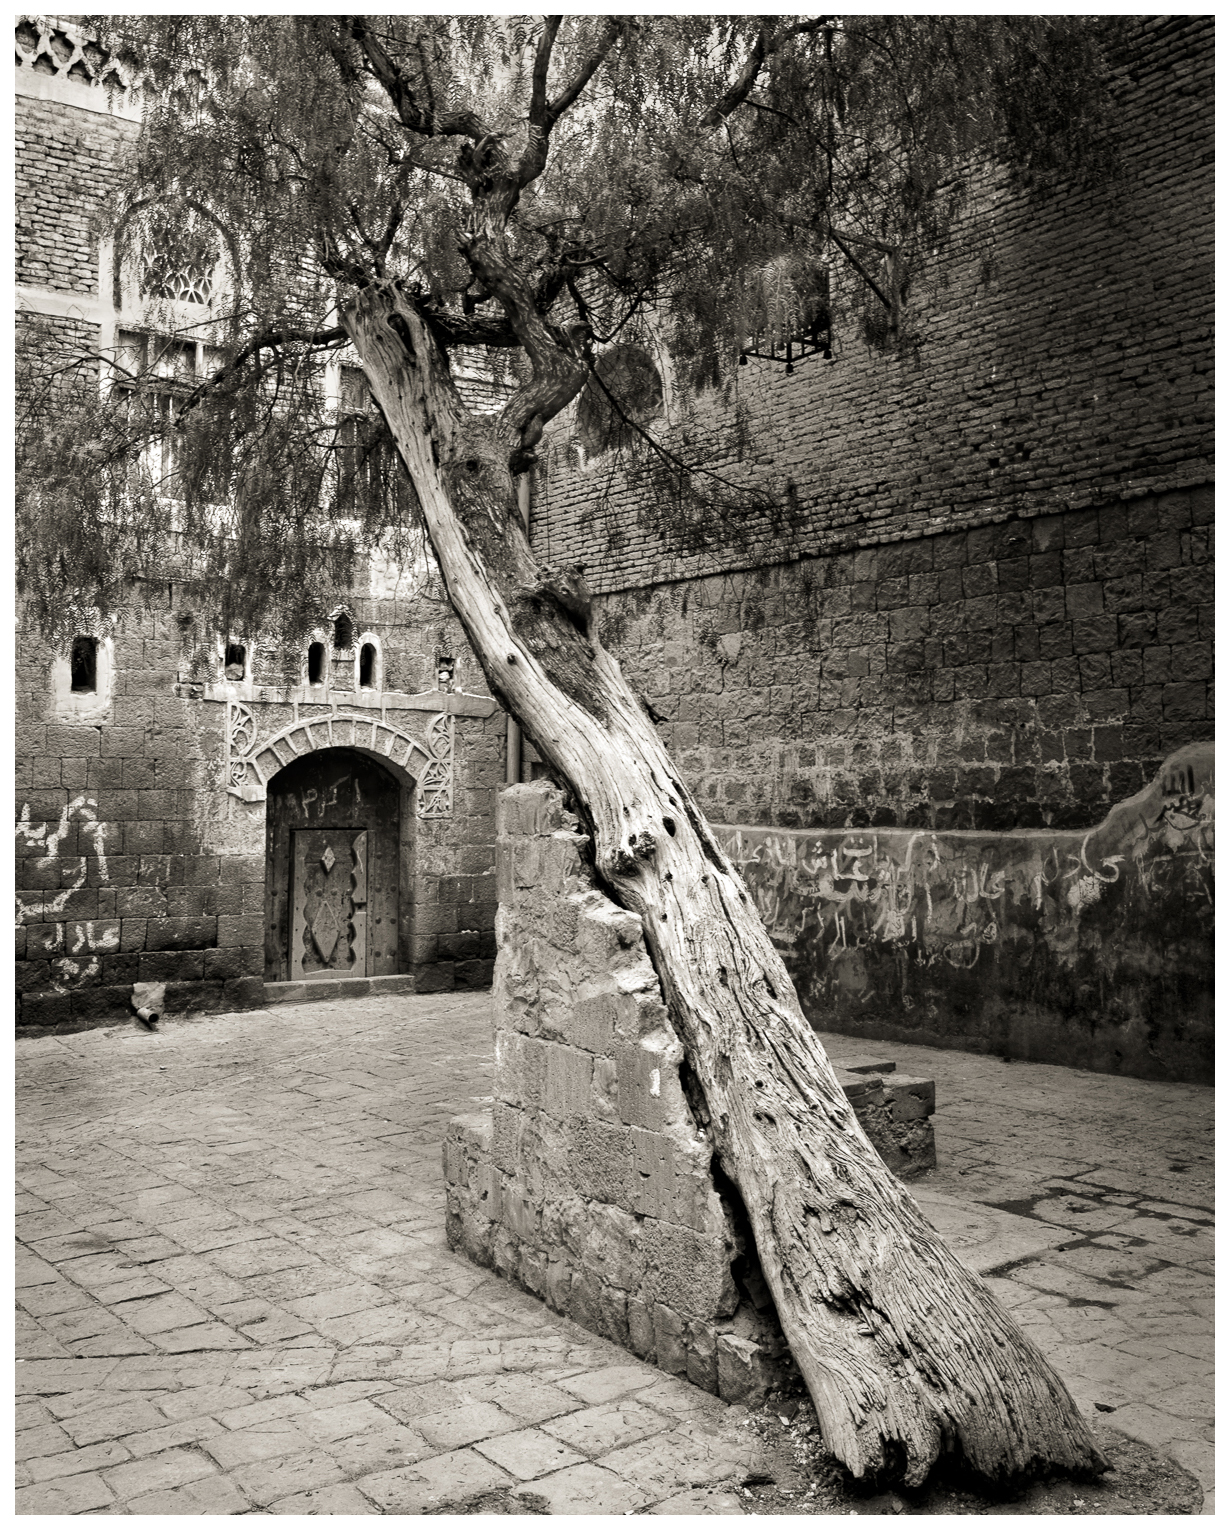 11Ancient Courtyard, Sana'aSupported Tree_DSC1997.jpg